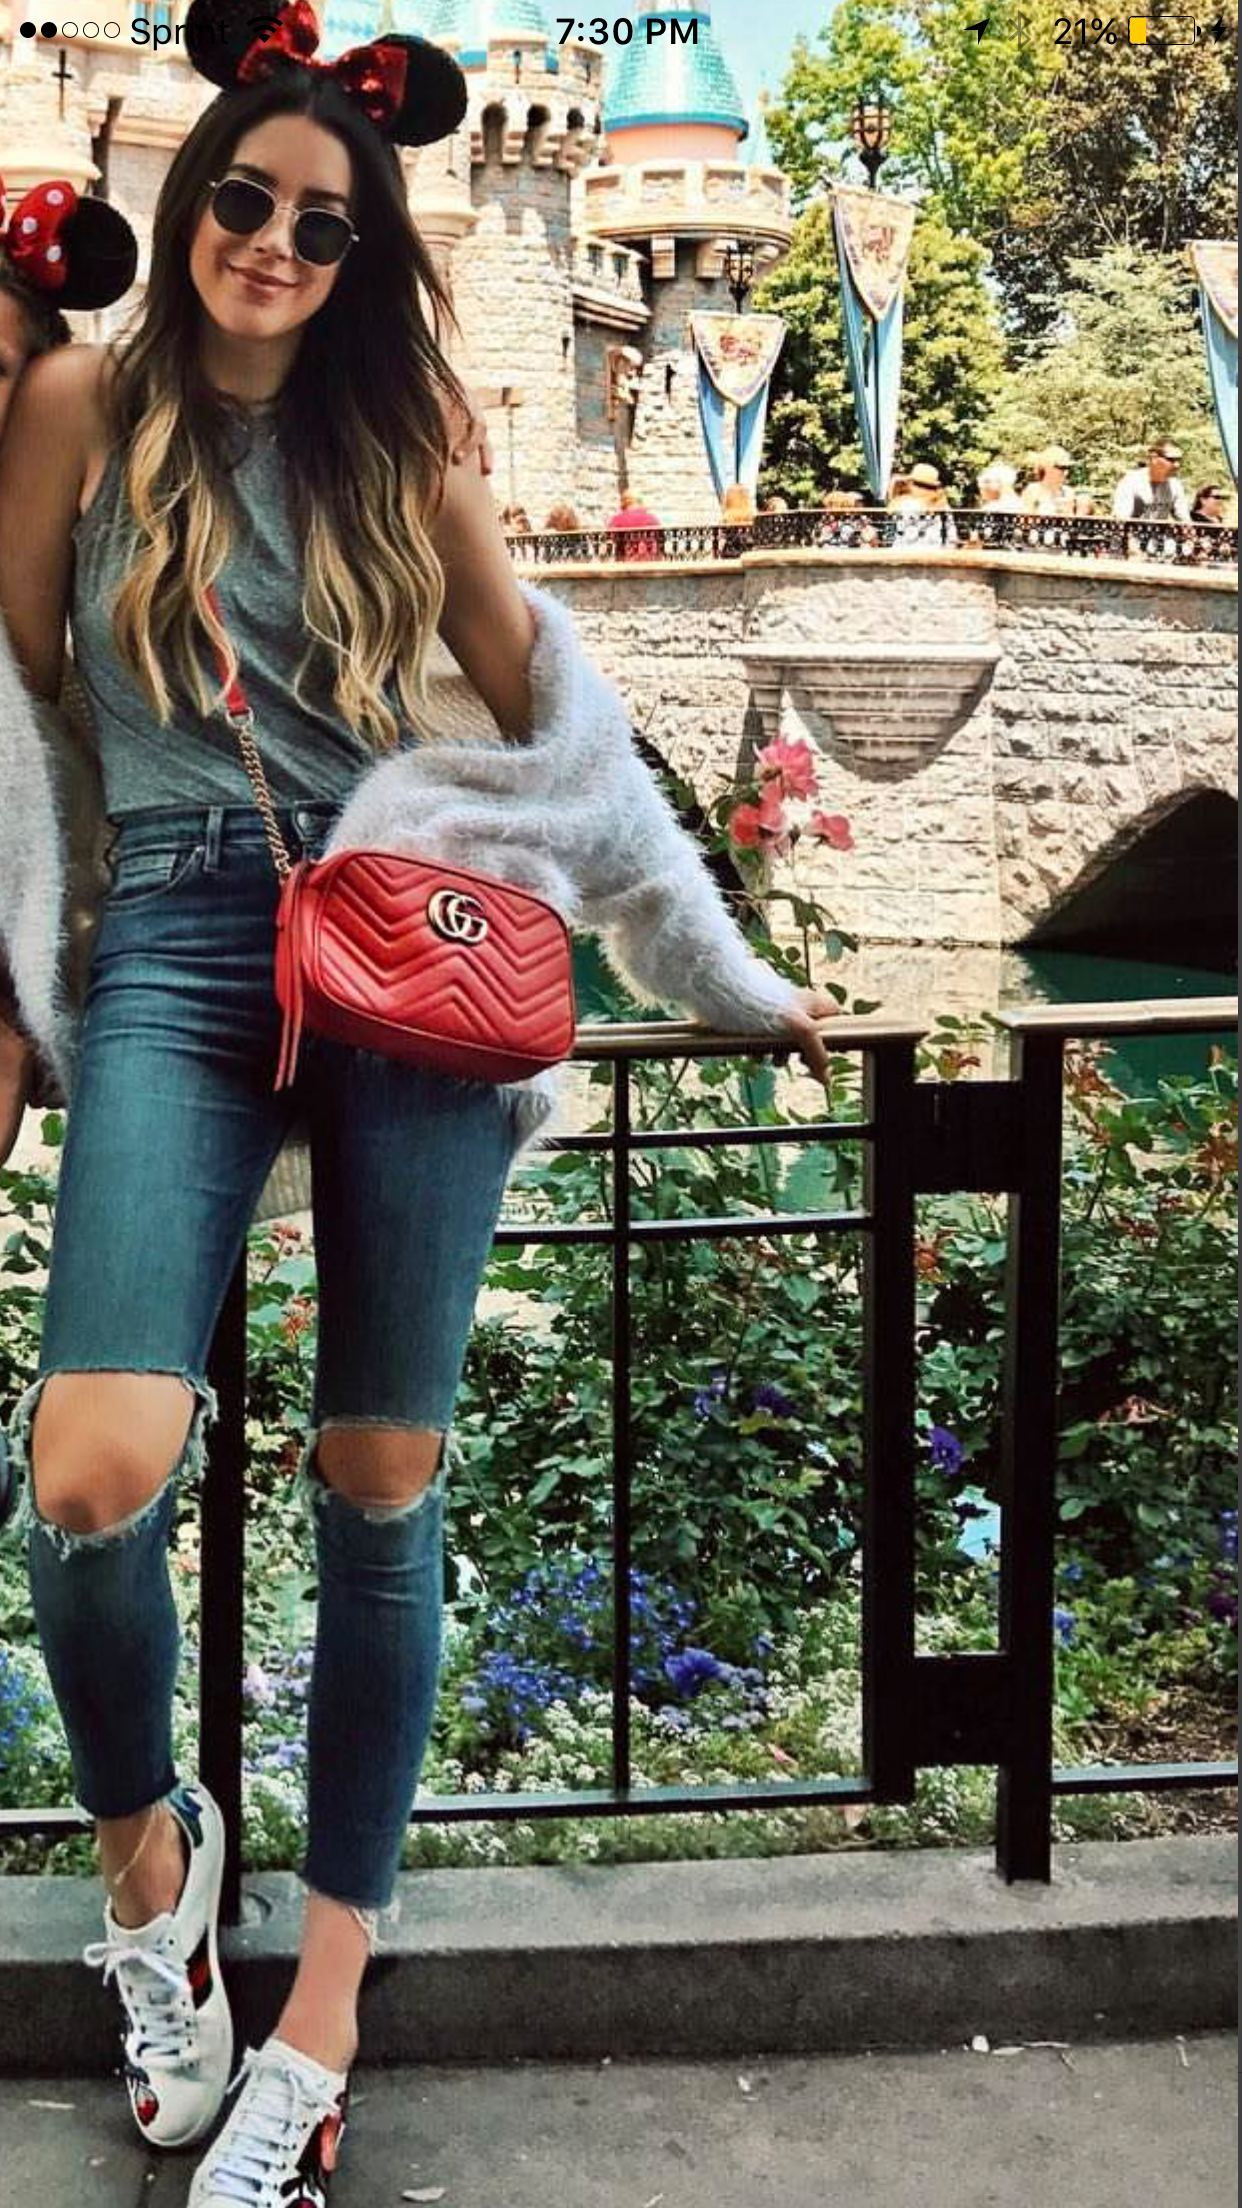 Cute Disneyland outfit | Disney | Pinterest | Disneyland outfits Theme park outfits and Clothes